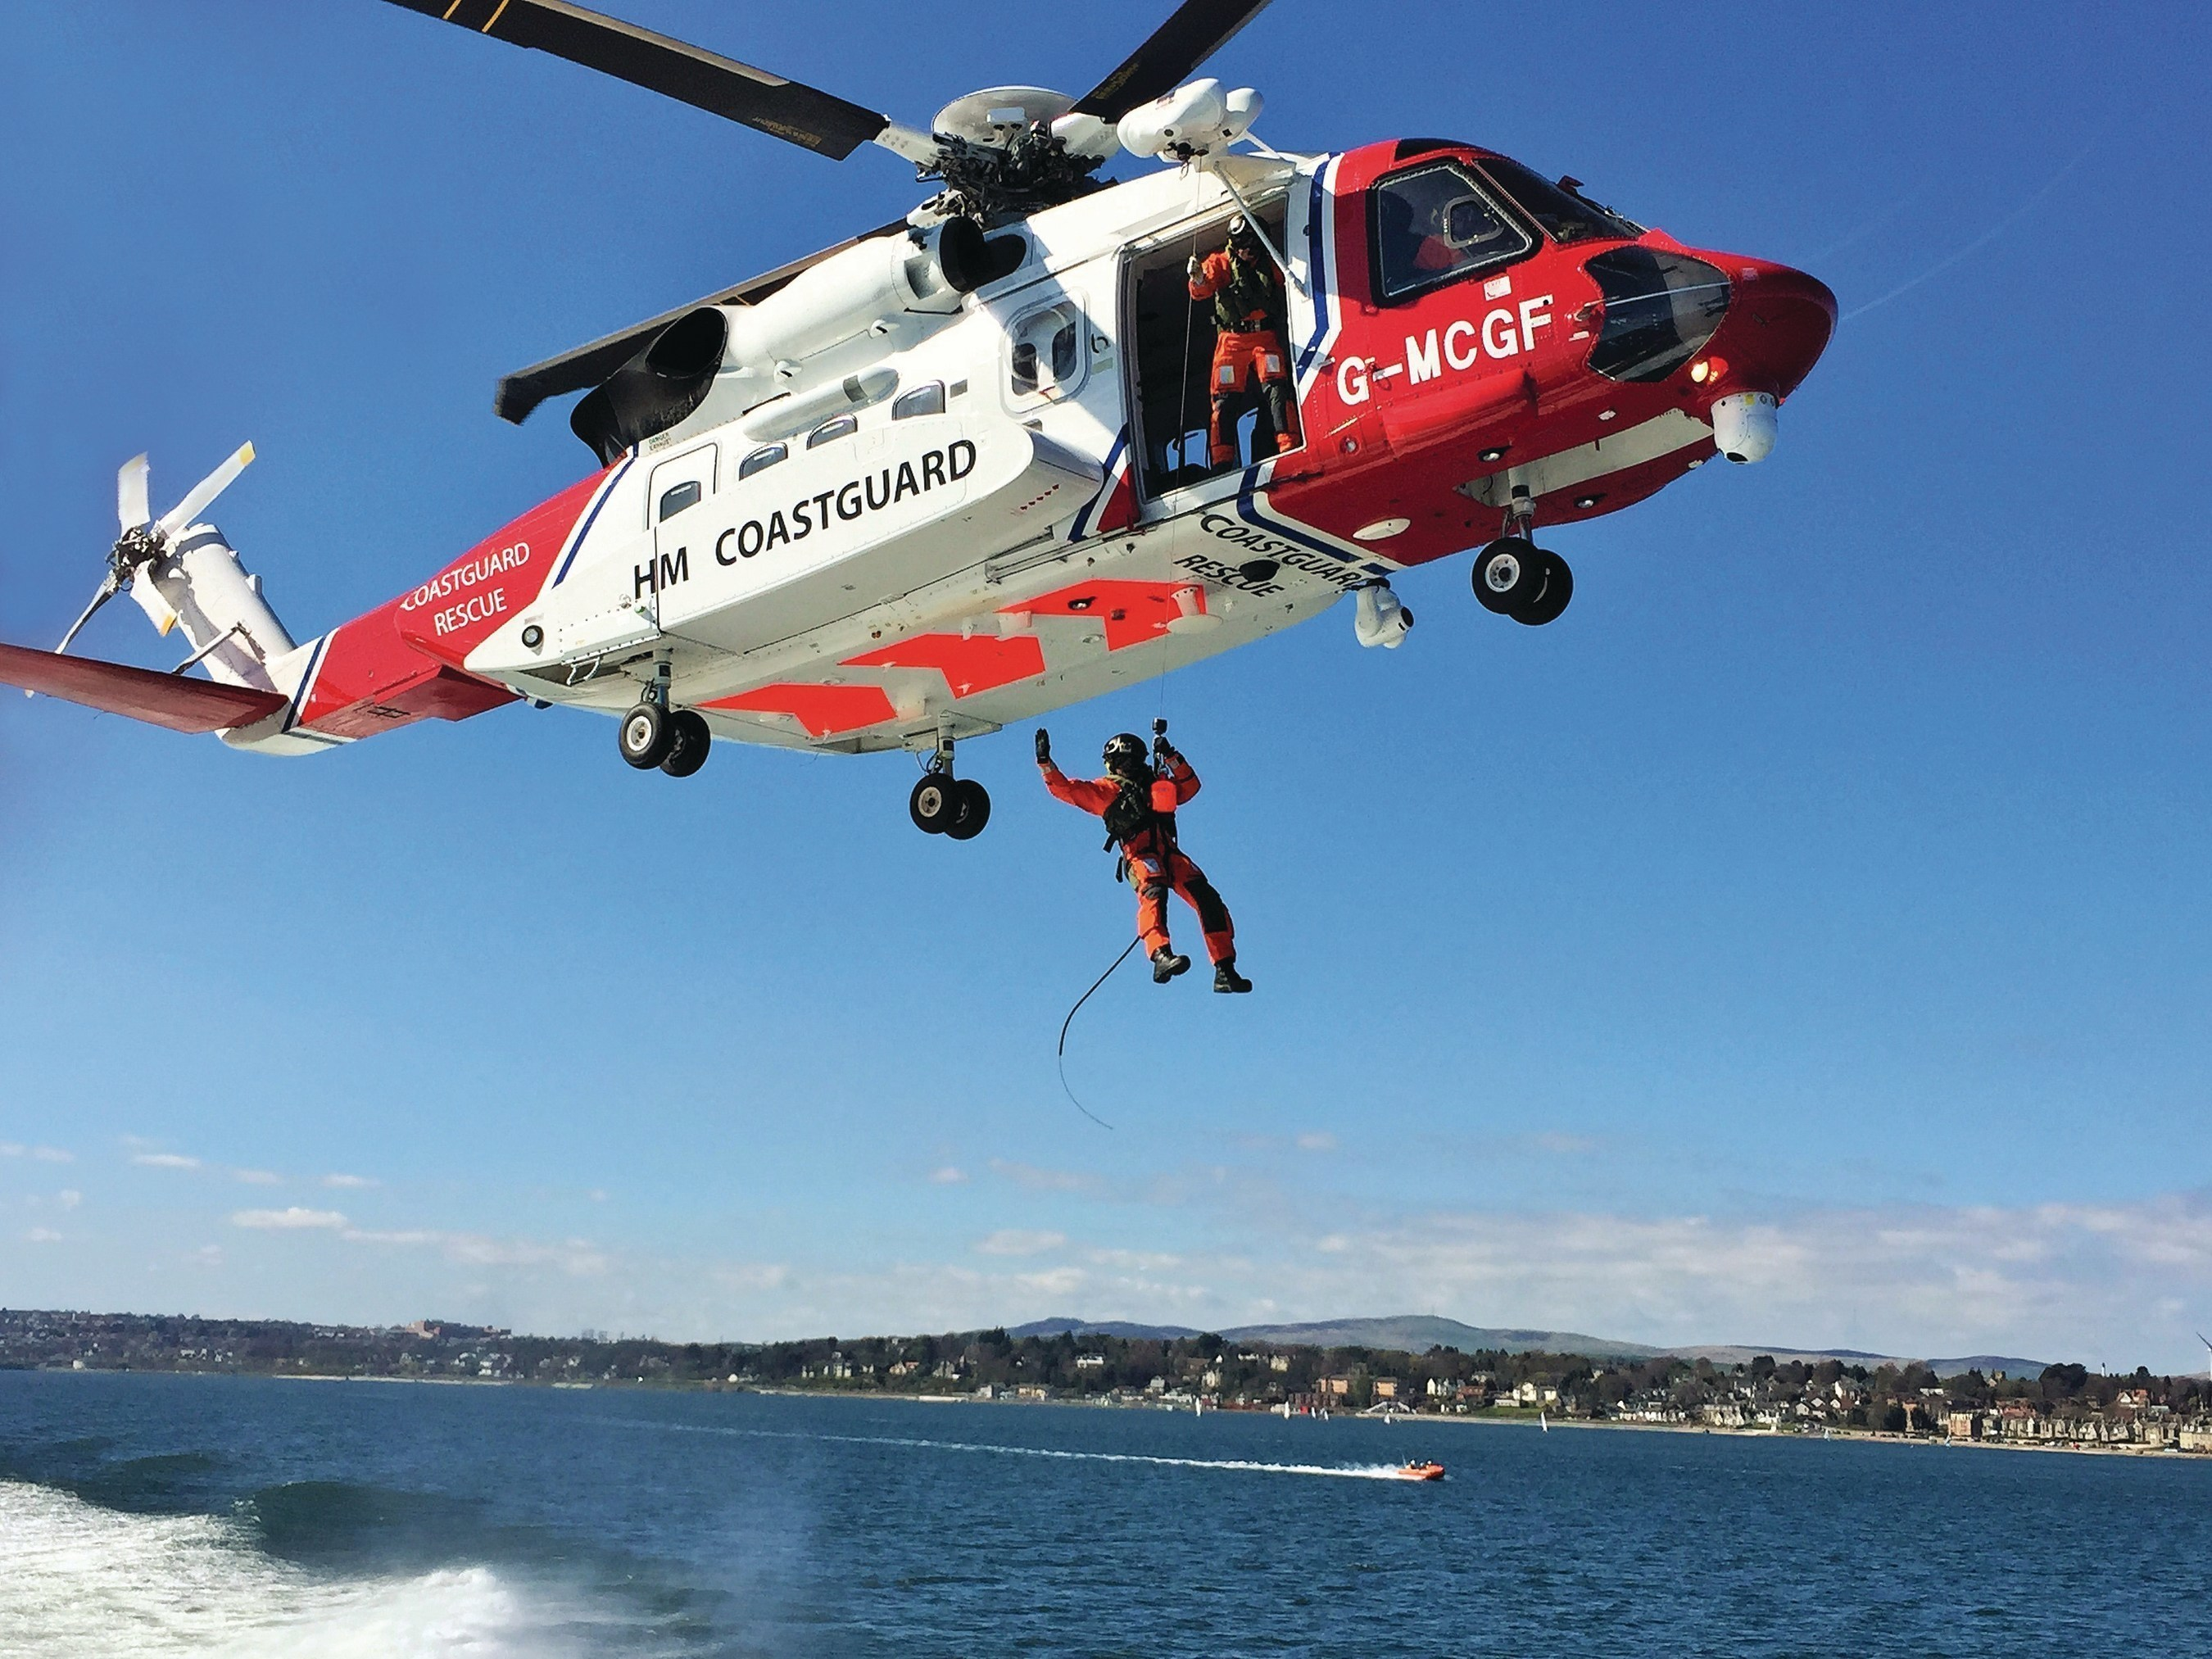 In the first year of UK search and rescue (SAR) operations, which commenced April 1, 2015, Bristow successfully completed more than 1,100 SAR missions with Sikorsky S-92(R) helicopters. [Photo courtesy: UK Maritime and Coastguard Agency]